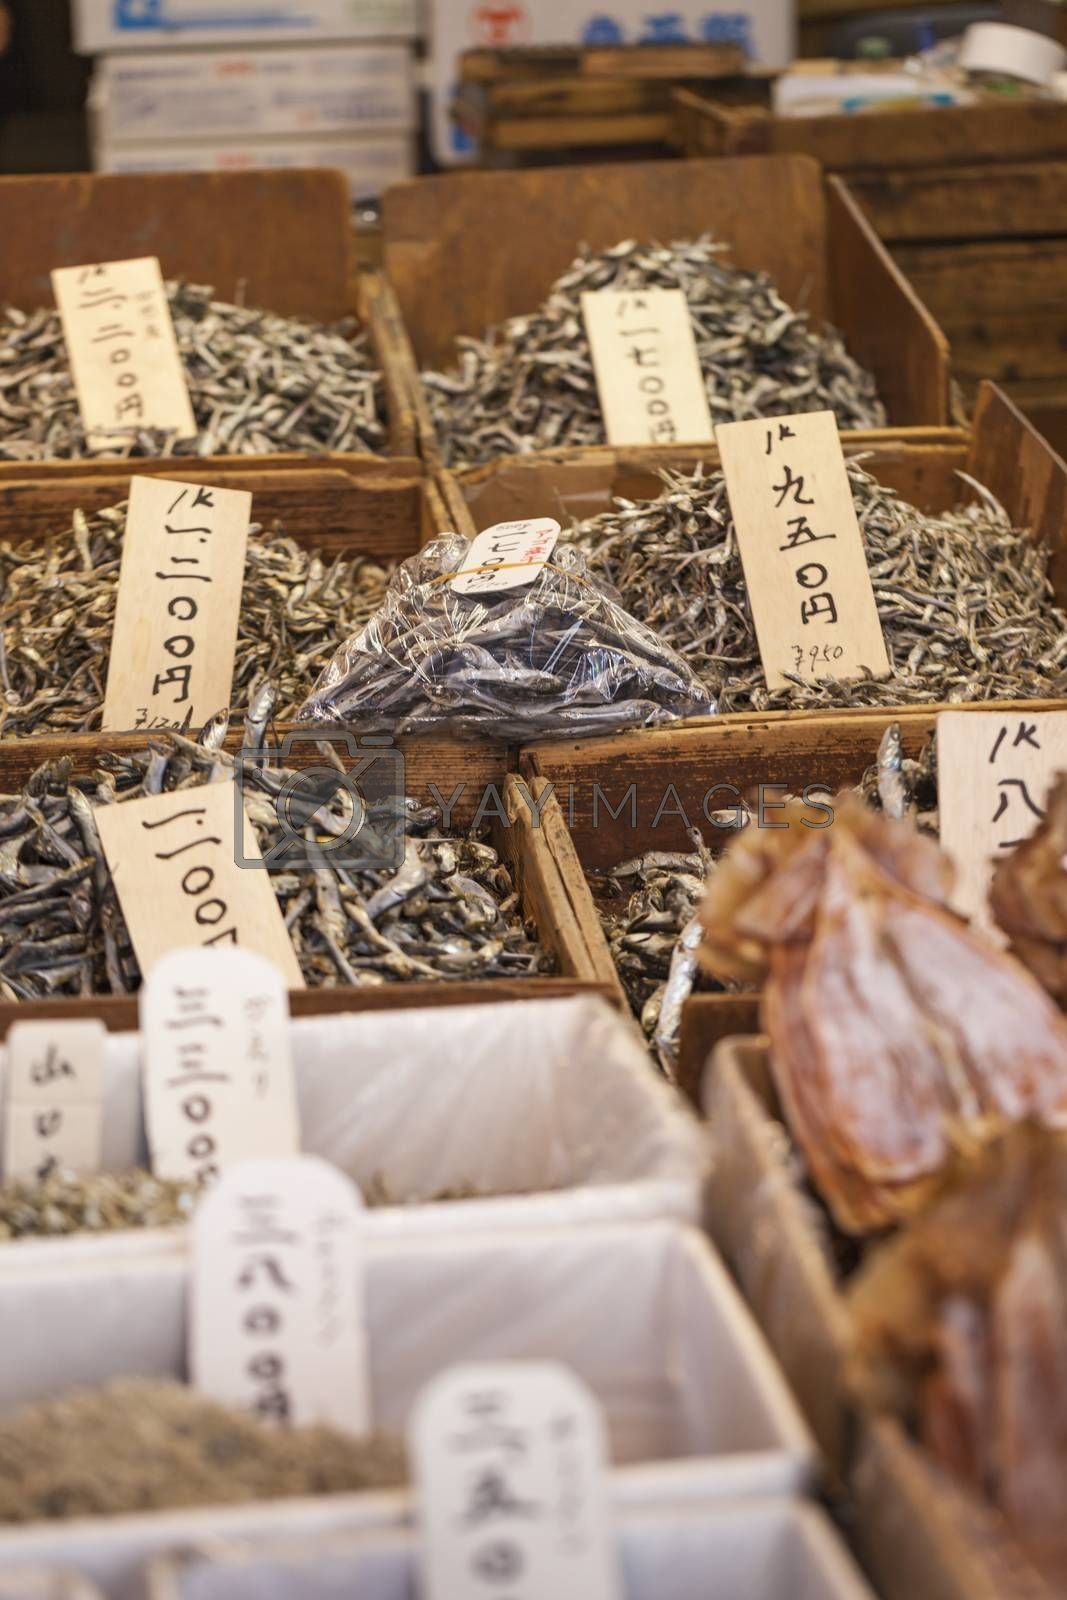 Dried fish, seafood product at market from Japan.